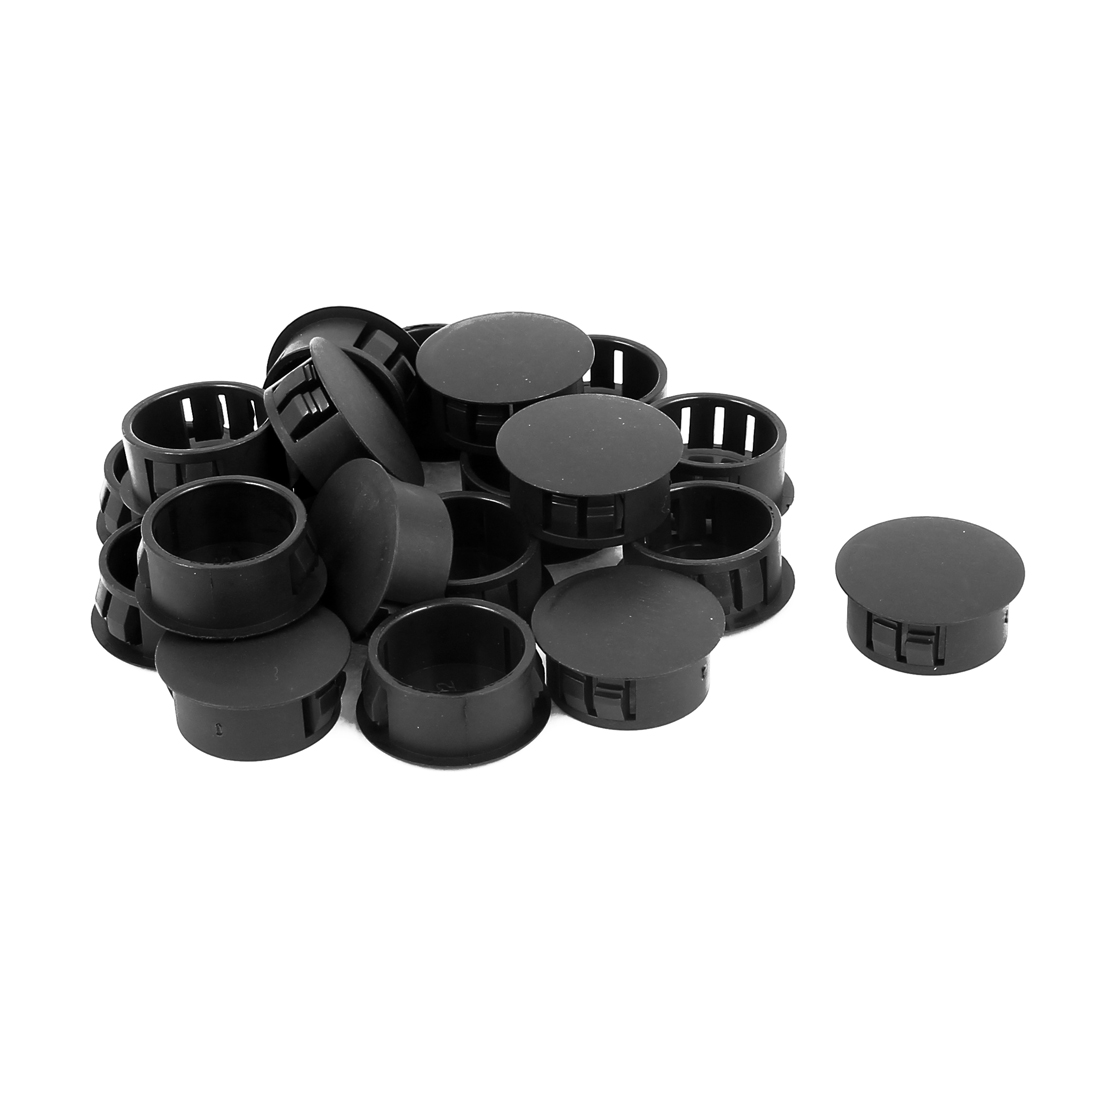 20pcs Plastic 22mm Dia Snap in Type Locking Hole Connectors Button Cover